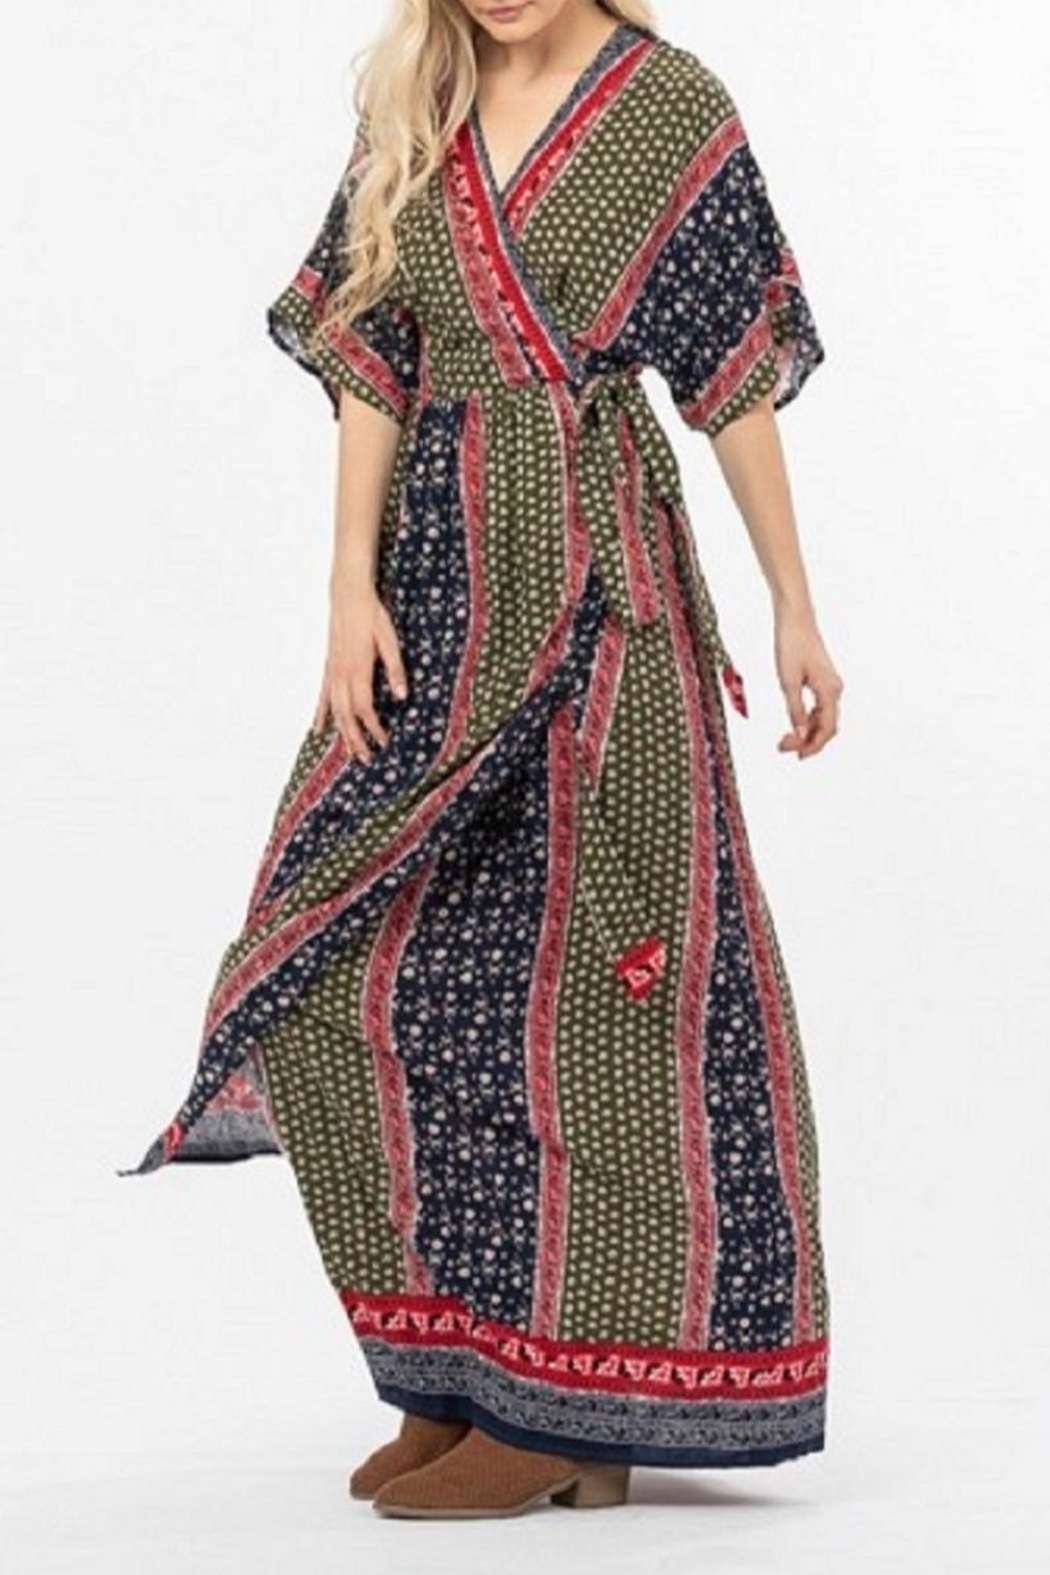 LoveRiche Mixed-Print Wrap Maxi-Dress - Front Full Image